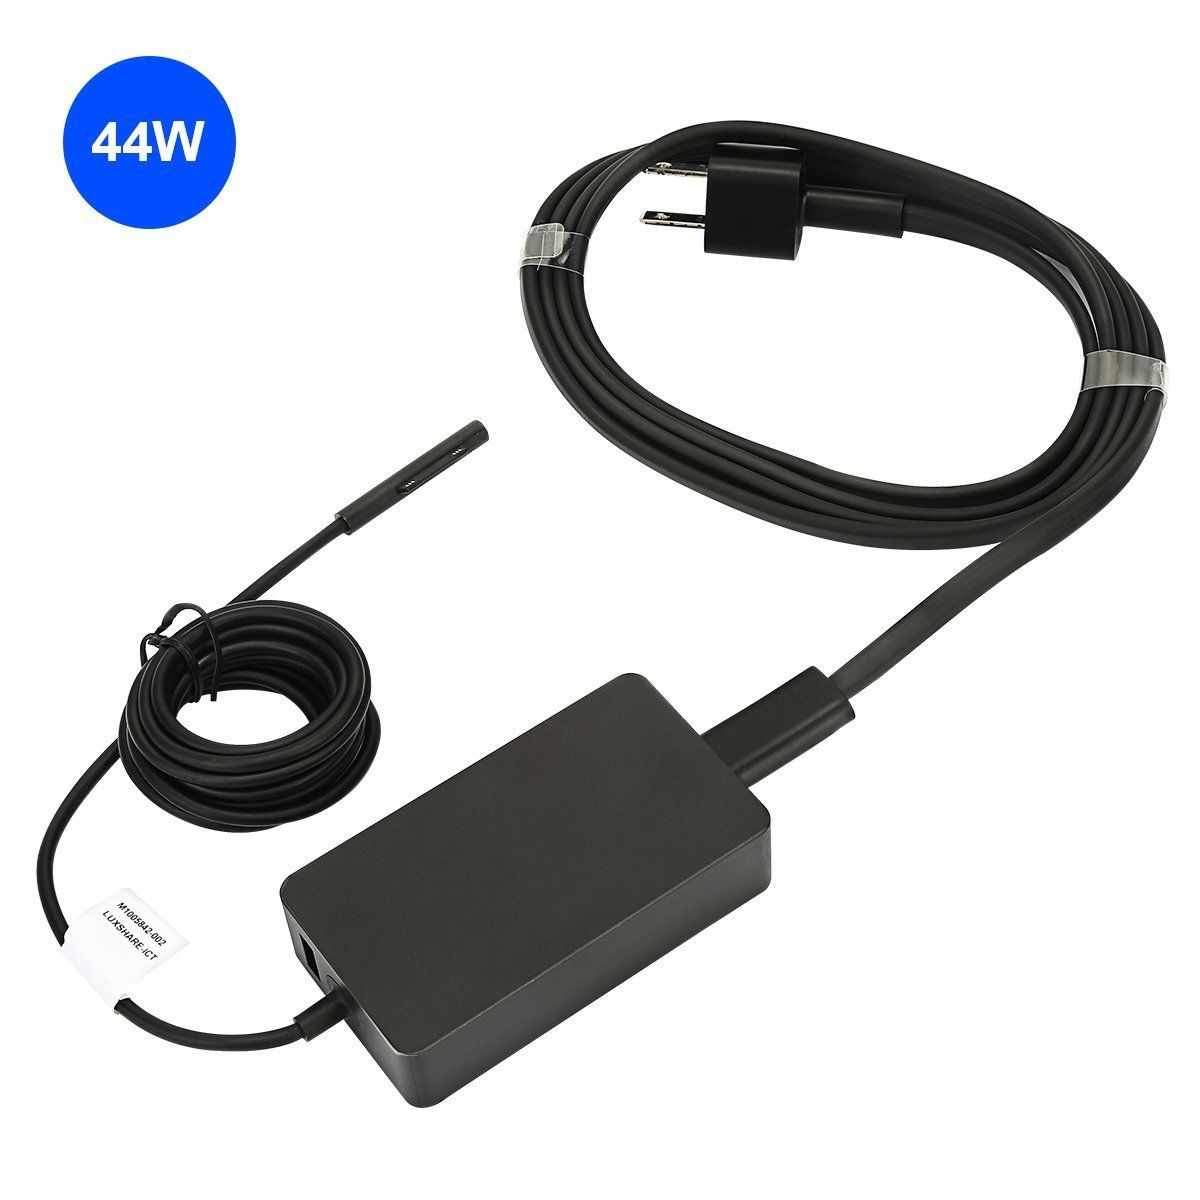 Sạc Adapter Microsoft Surface 15V 2.58A 44W